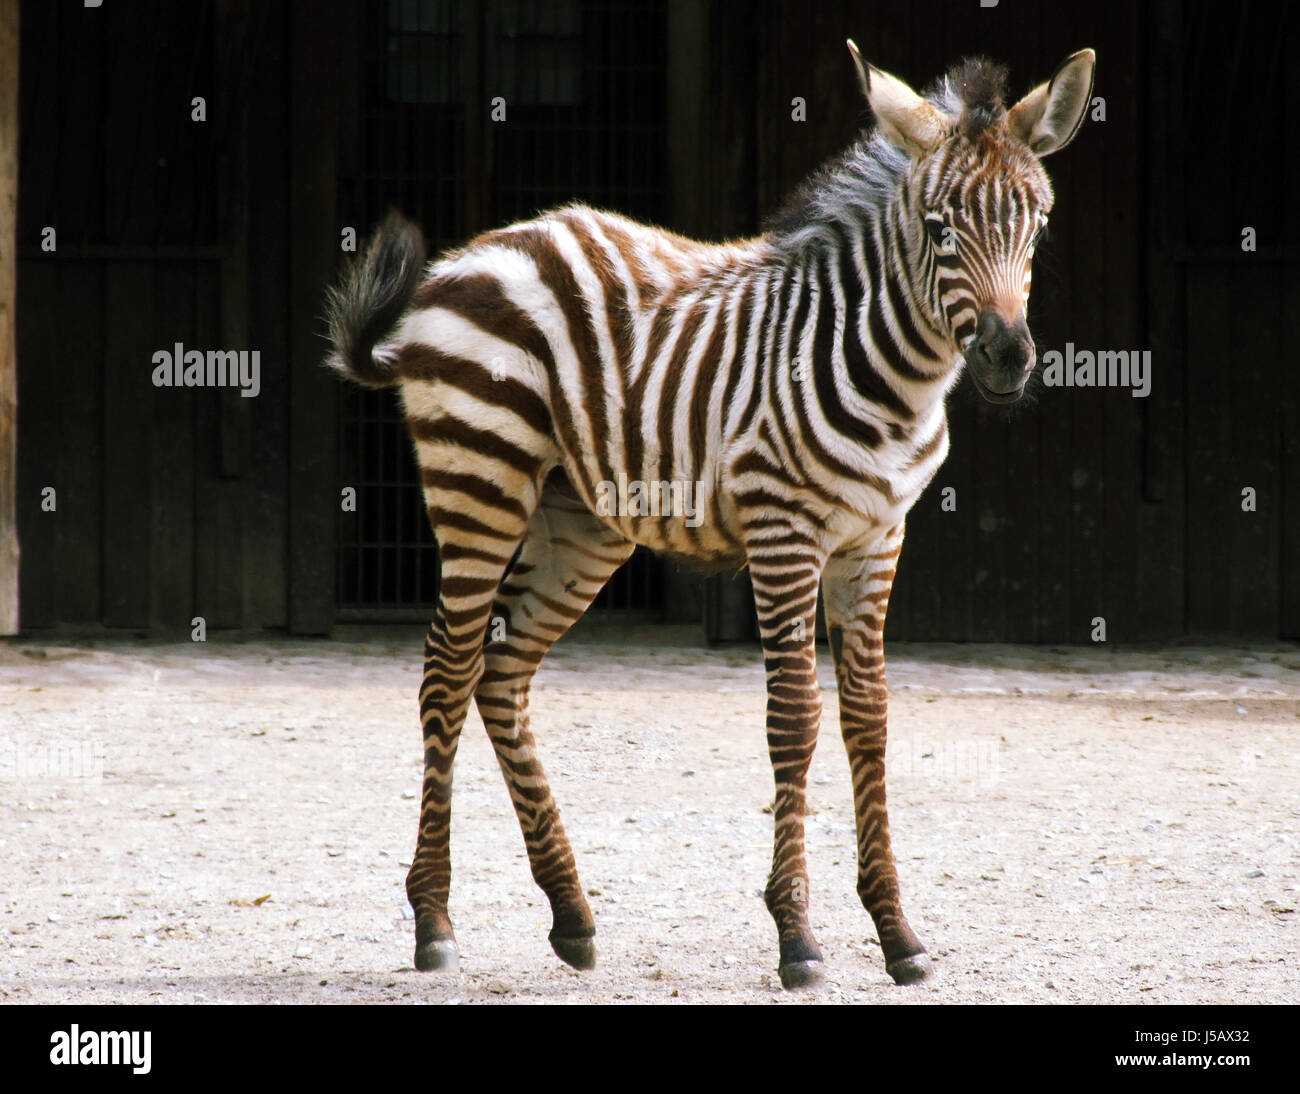 animal zebra horse foal young animal maddening pert coquettish cute young - Stock Image